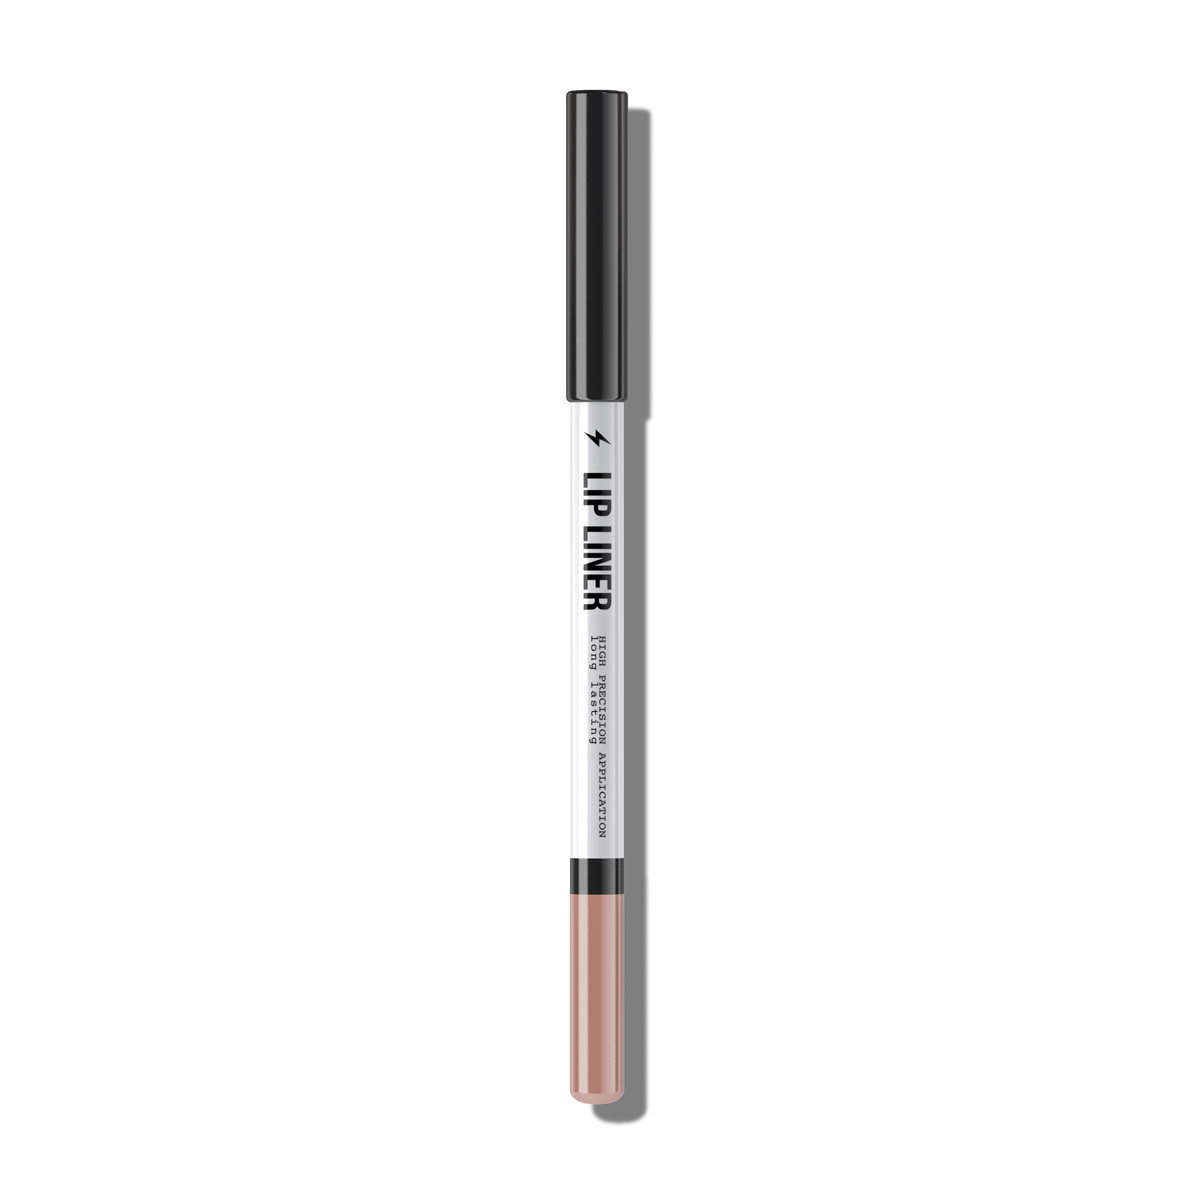 LIP LINER 63 Delicate Brown